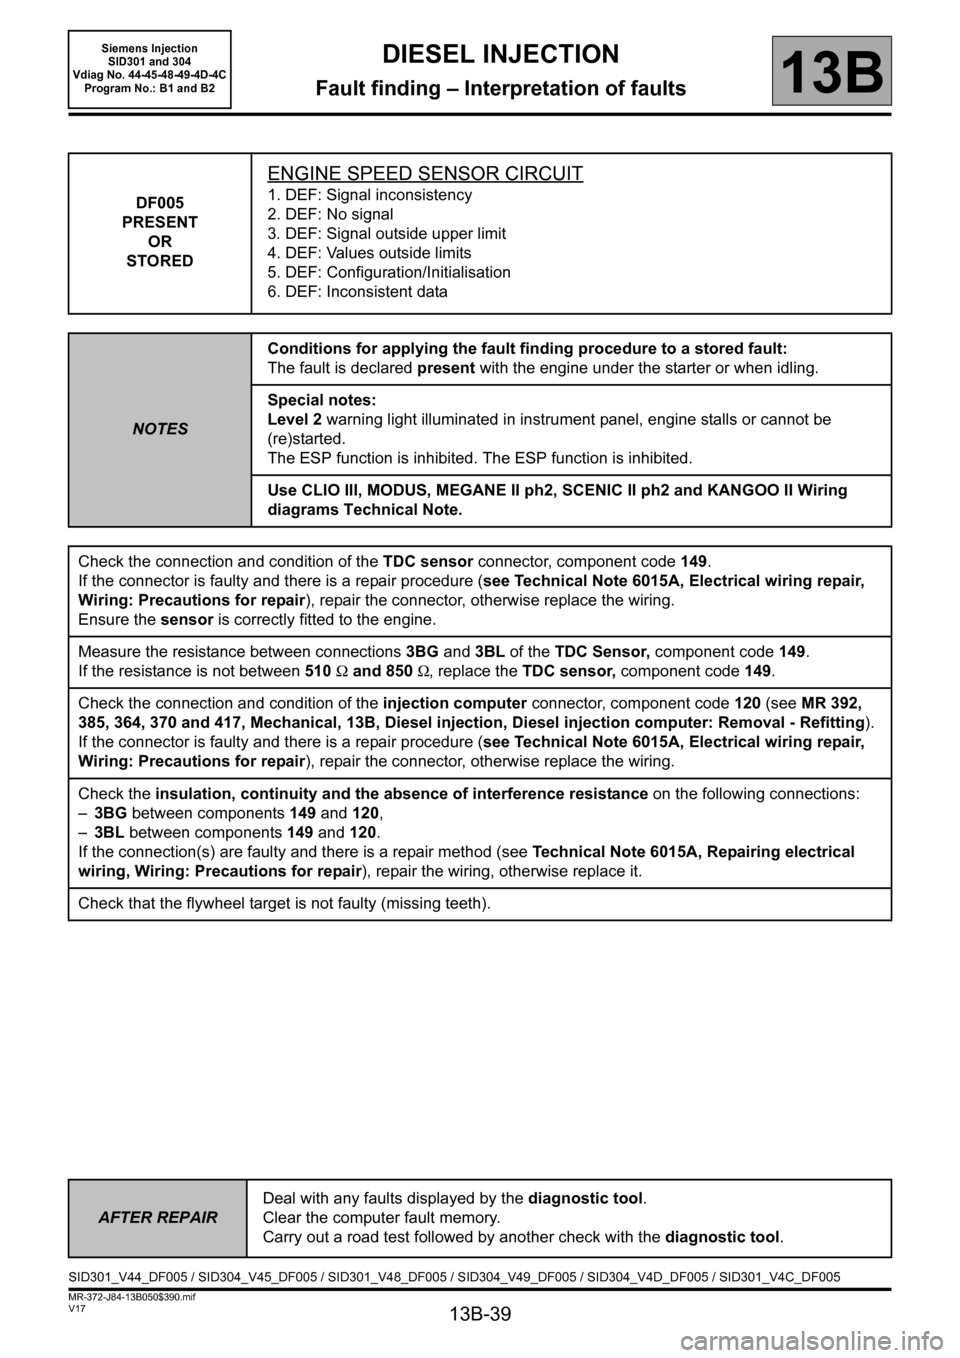 RENAULT SCENIC 2011 J95 / 3.G Engine And Peripherals Siemens Injection Workshop Manual, Page 39